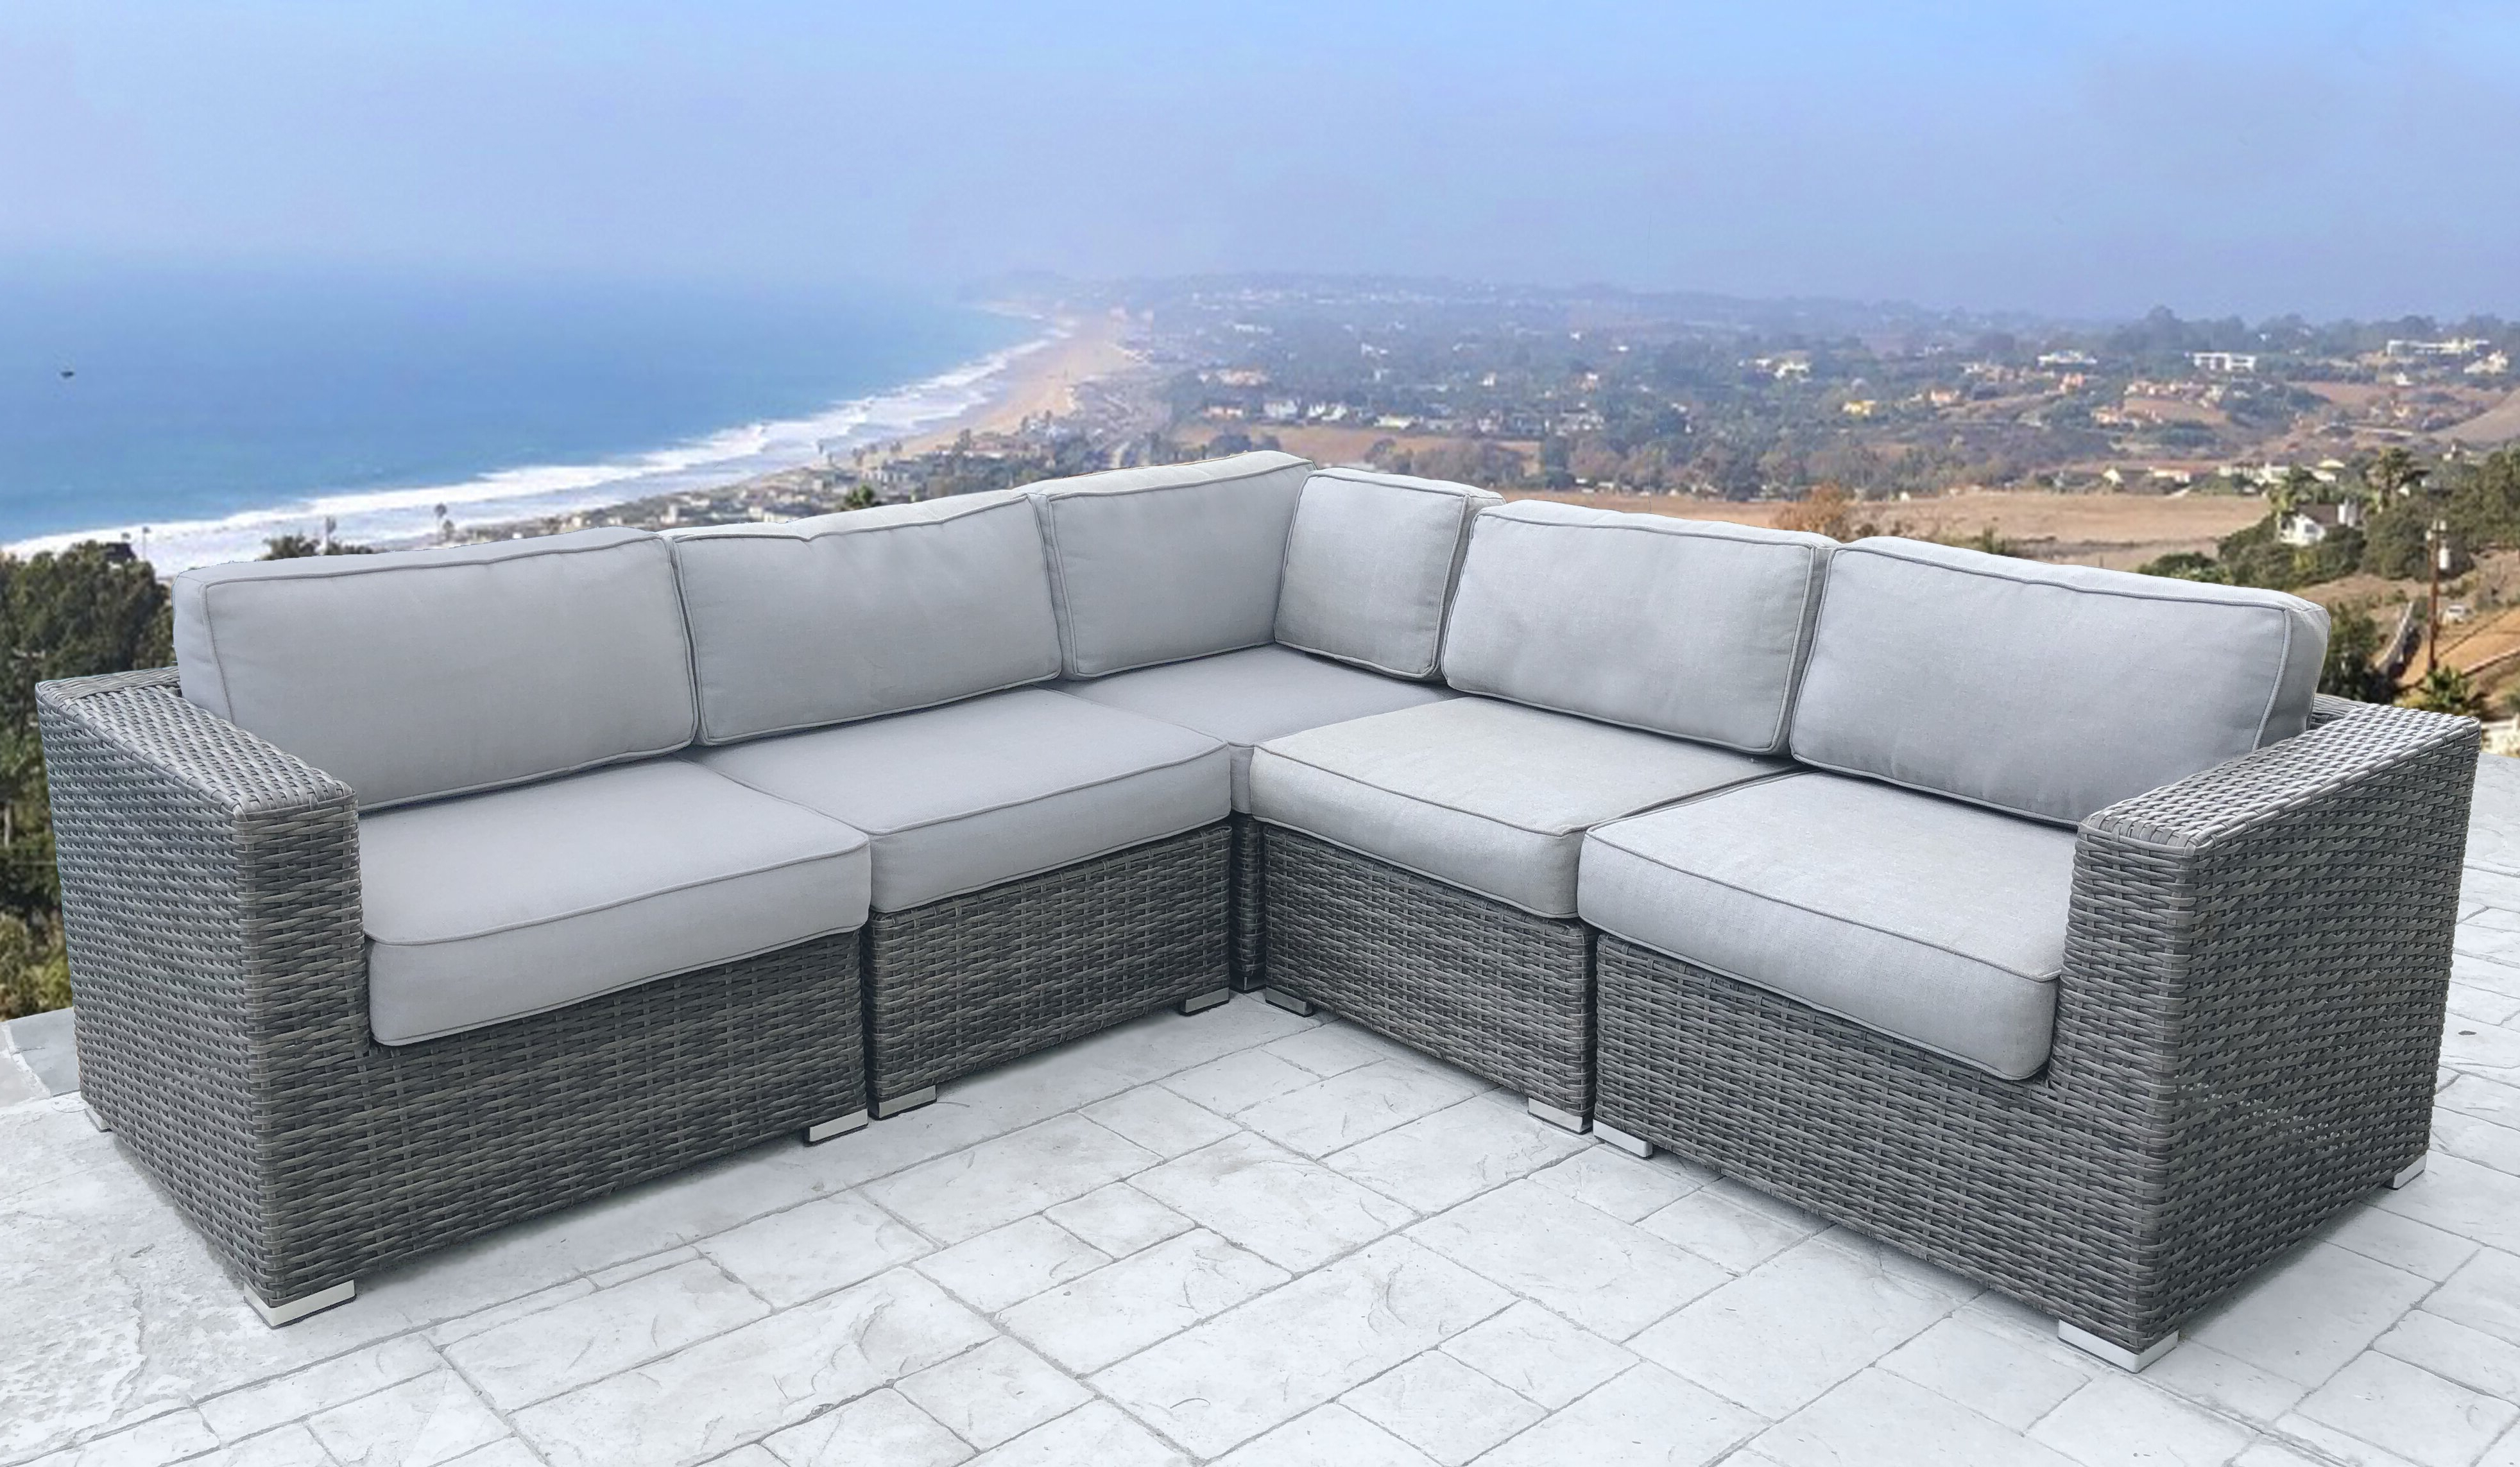 Purington Circular Patio Sectionals With Cushions Intended For Recent Nolen Patio Sectional With Cushions (View 17 of 20)